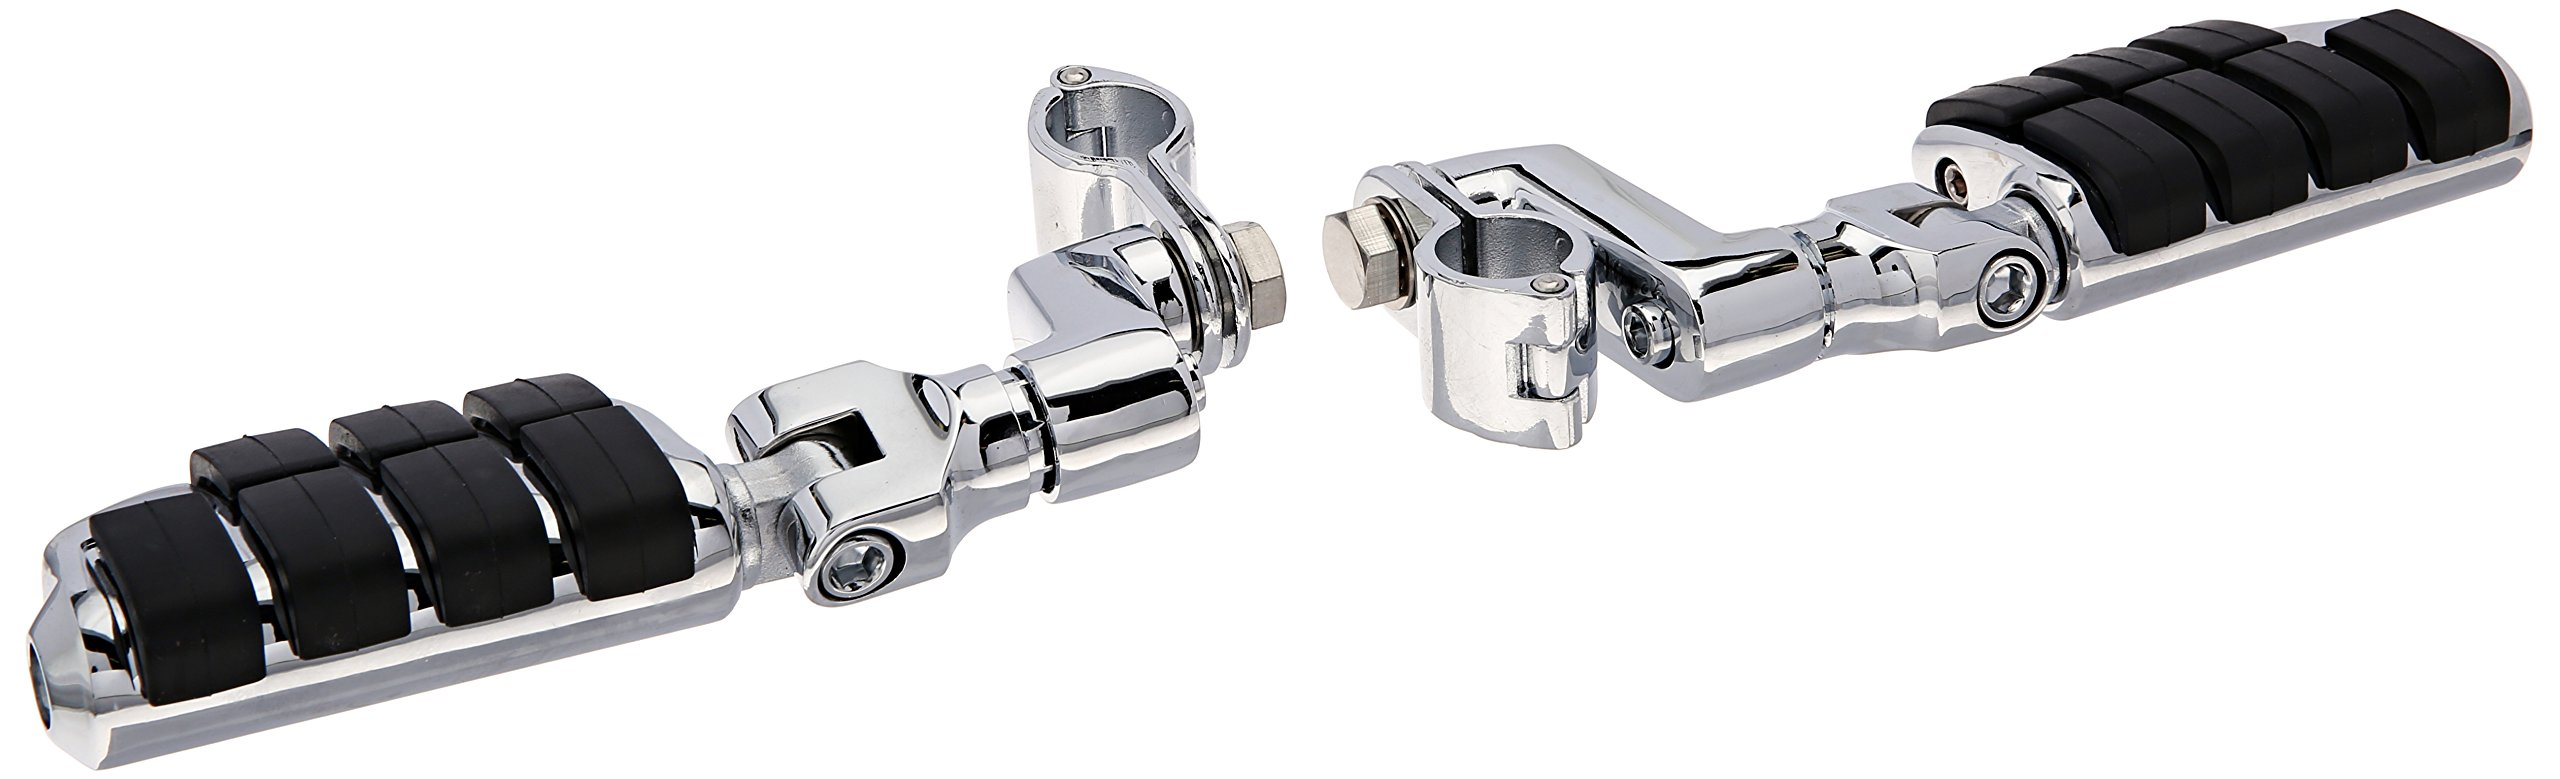 Kuryakyn 7999 ISO Large Highway Pegs with Offset Mounts and 1-1/4'' Magnum Quick Clamps